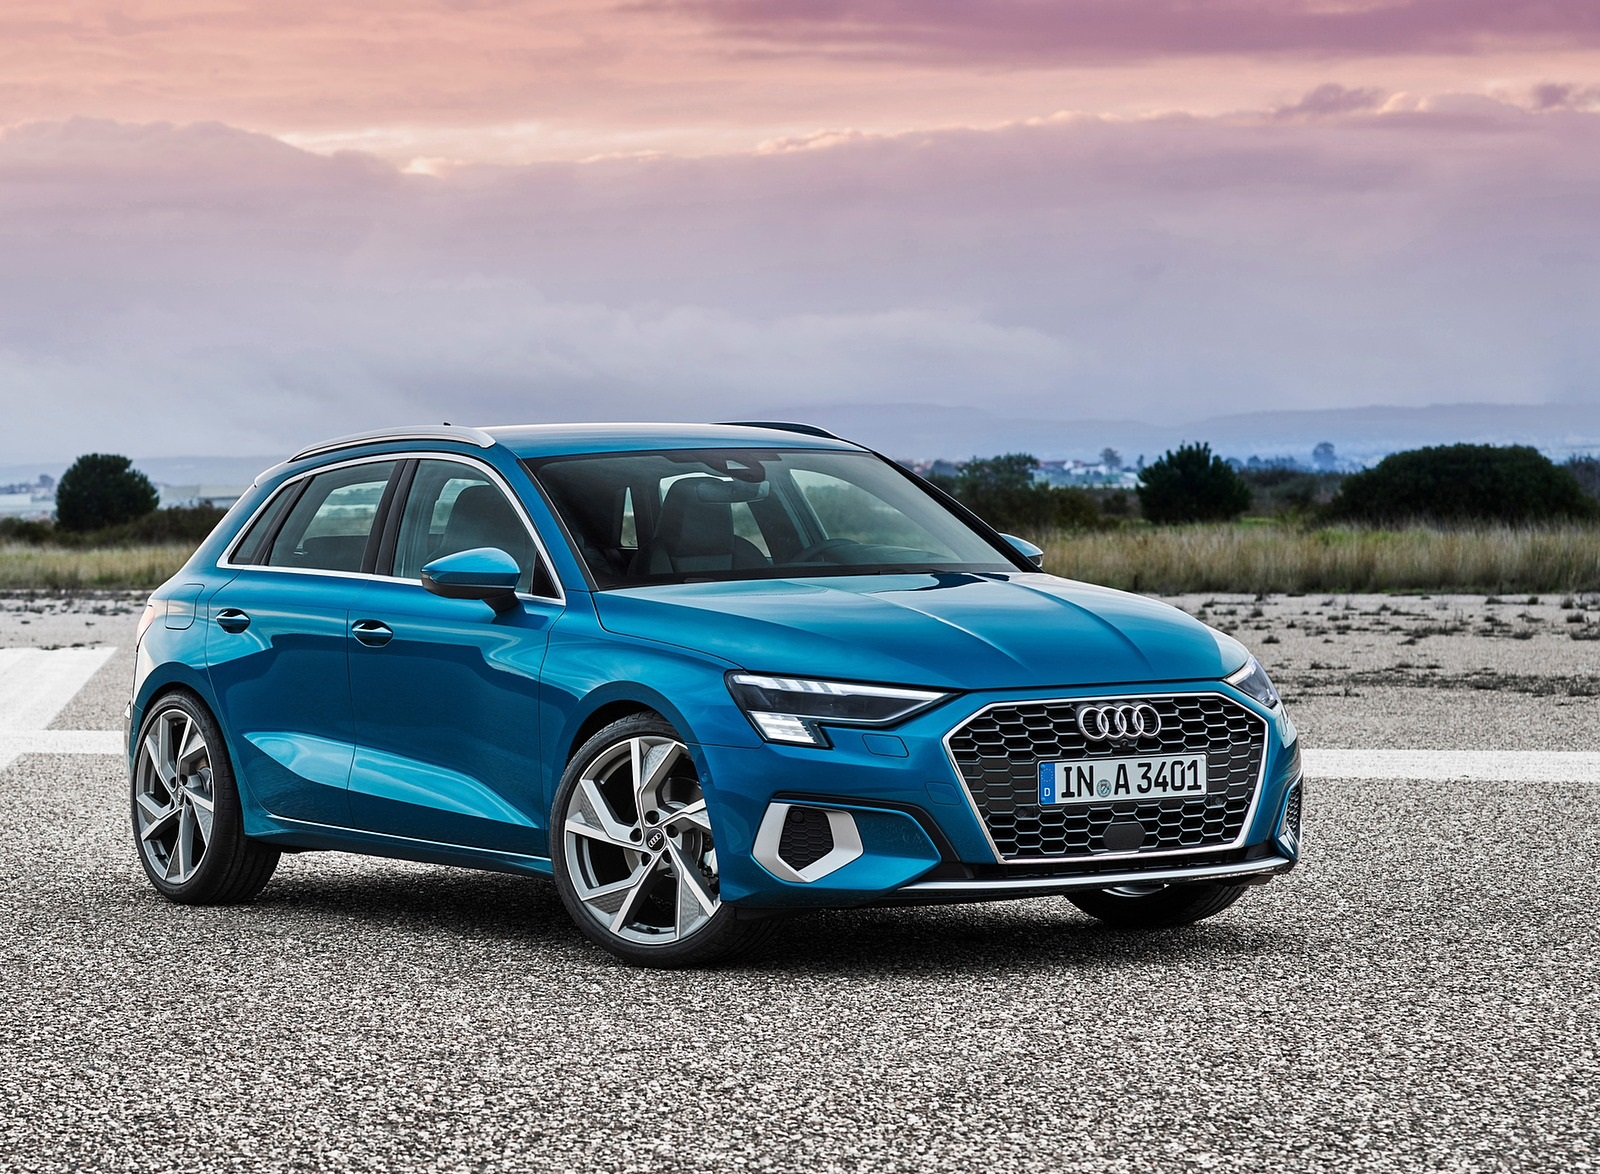 2021 Audi A3 Sportback (Color: Atoll Blue) Front Three-Quarter Wallpapers (6)